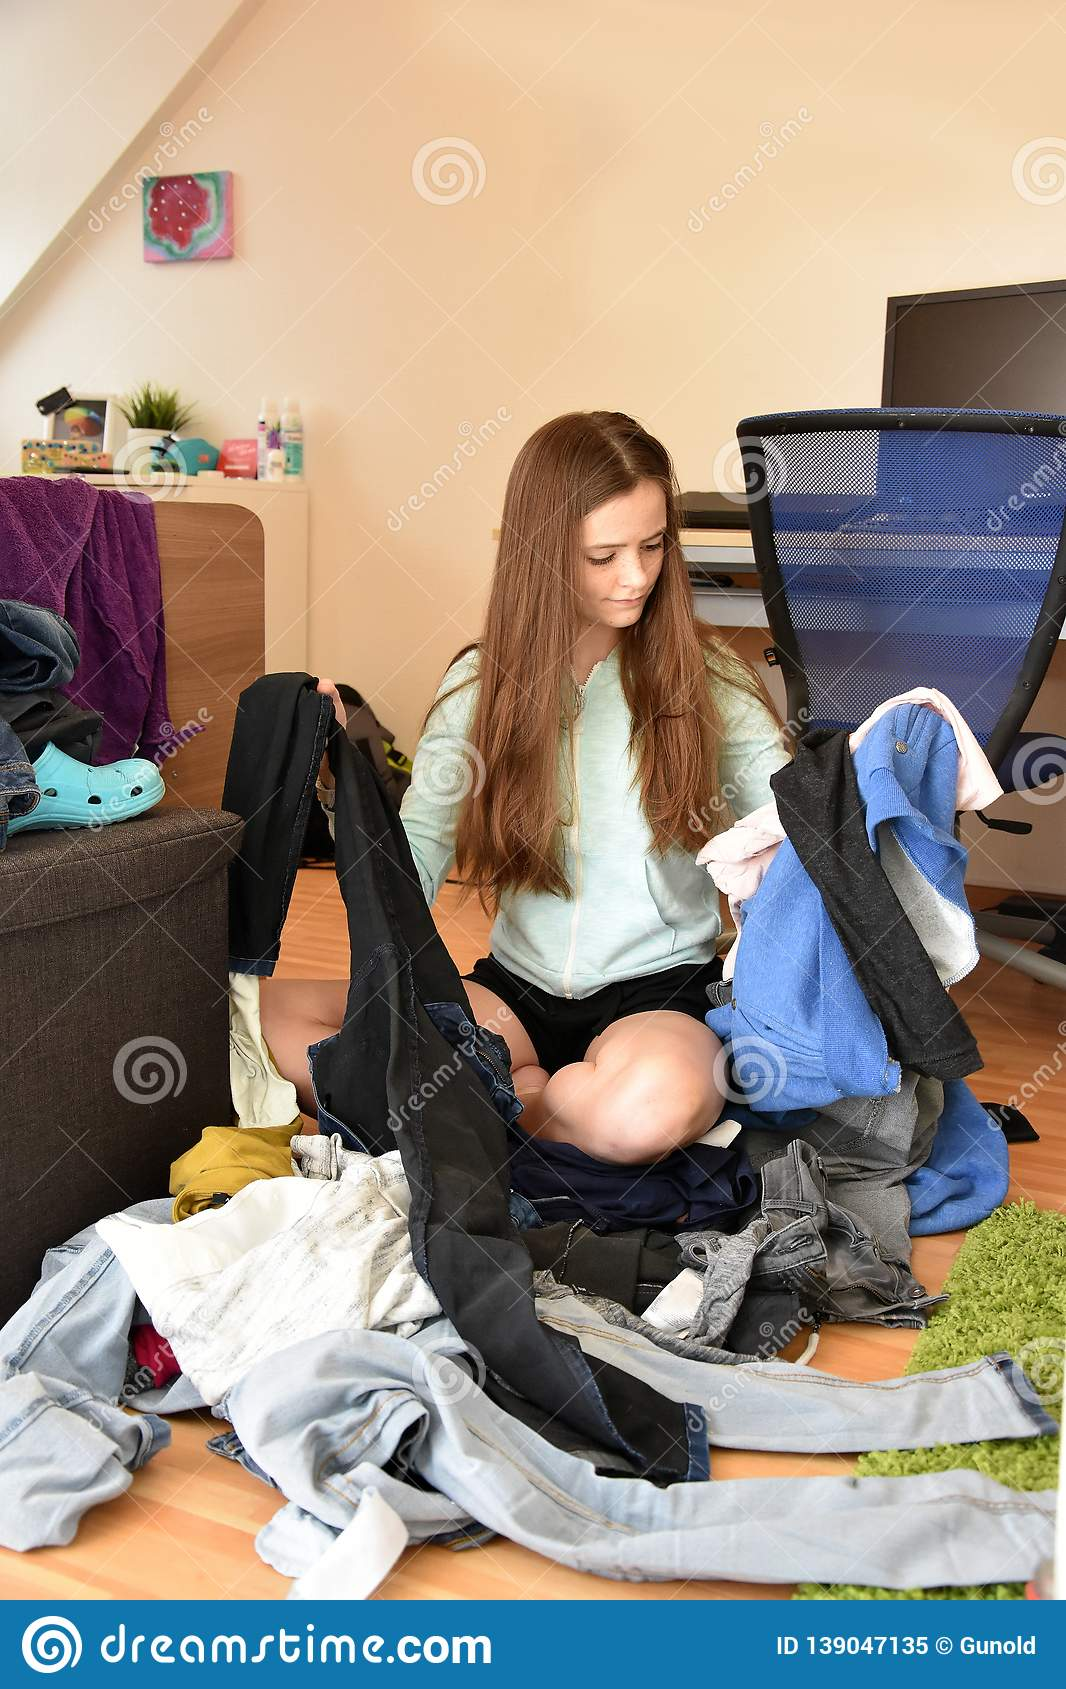 Frustrated Teenage Girl Choosing Her Outfit Stock Image - Image of